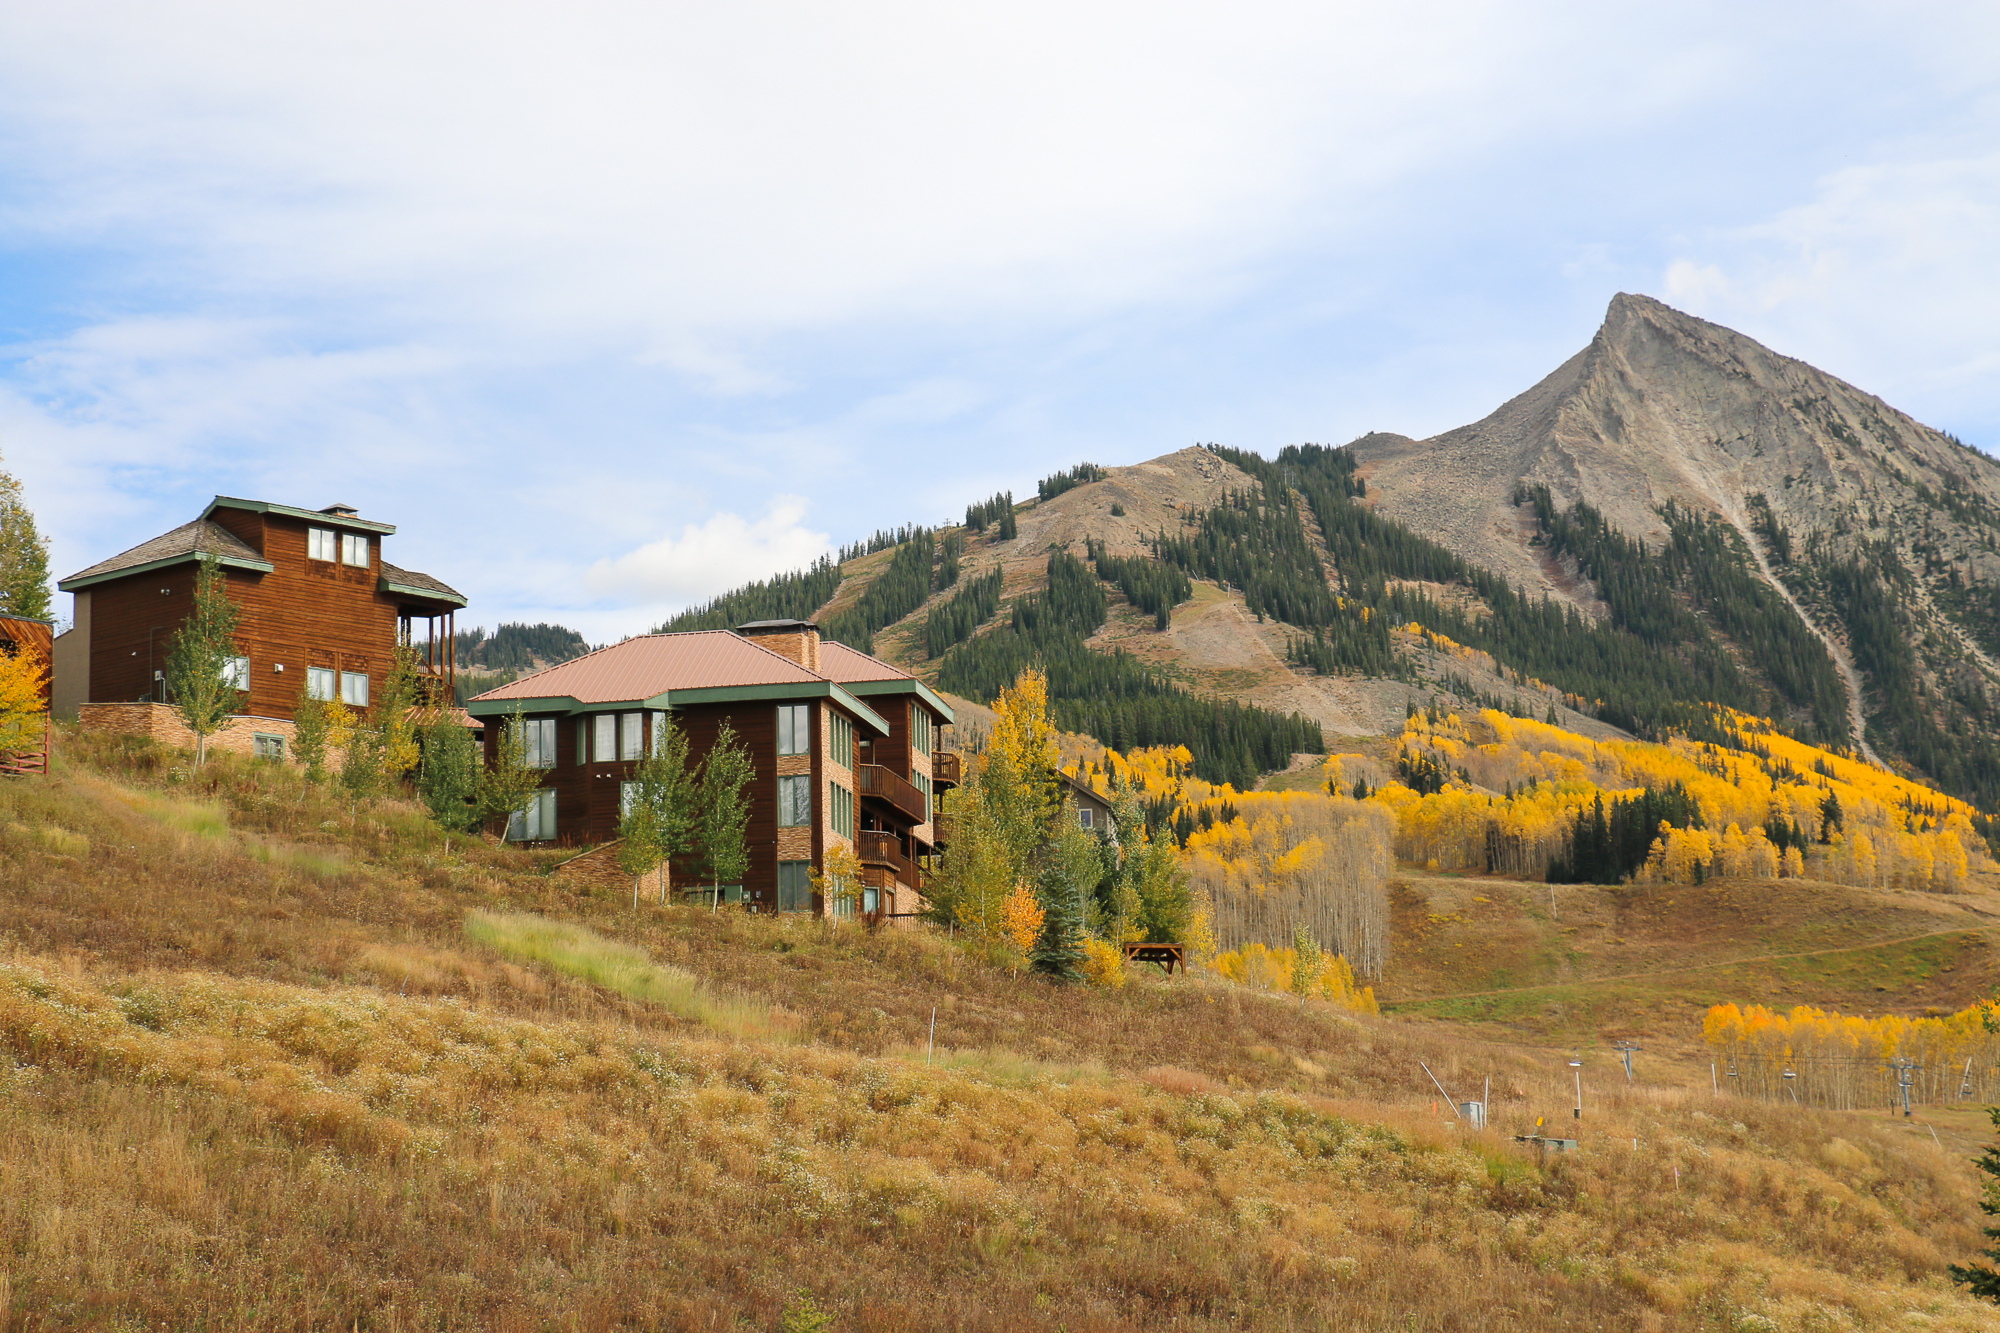 Single Family Home for Sale at The Crested Butte Retreat 39 Whetstone Road Crested Butte, Colorado 81225 United States